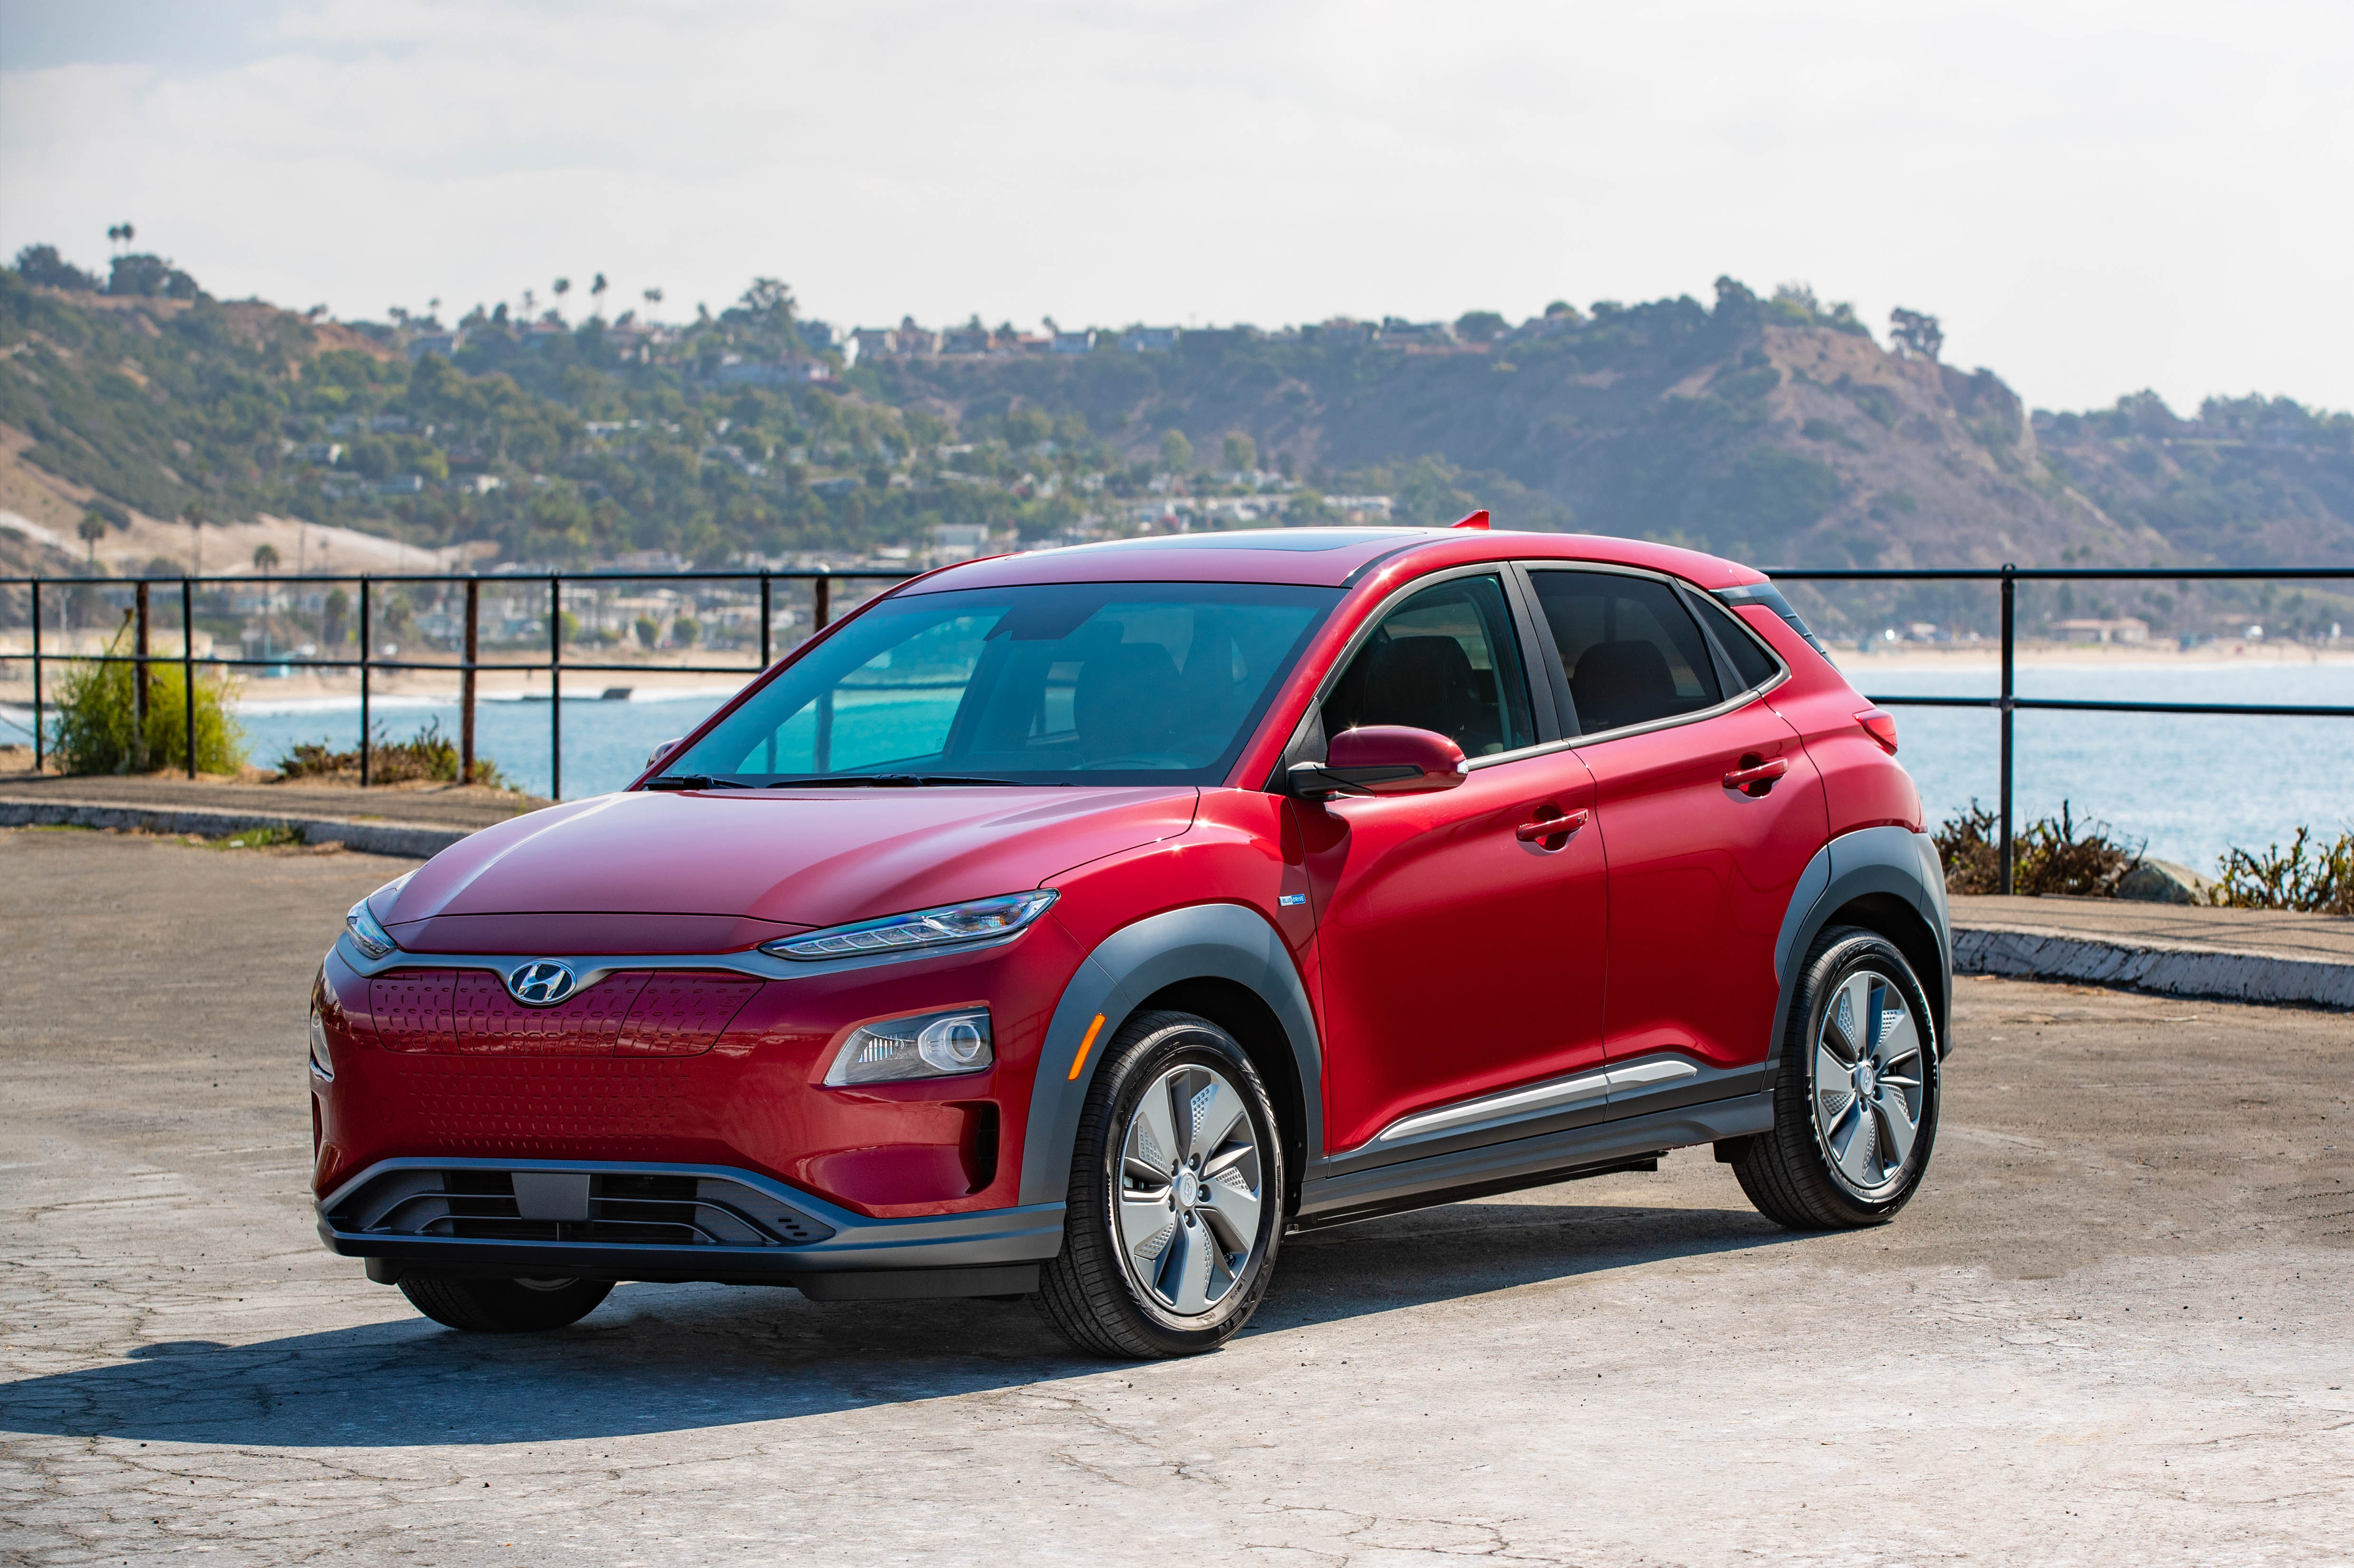 Hyundai Kona EV Launched With 258 Miles Range